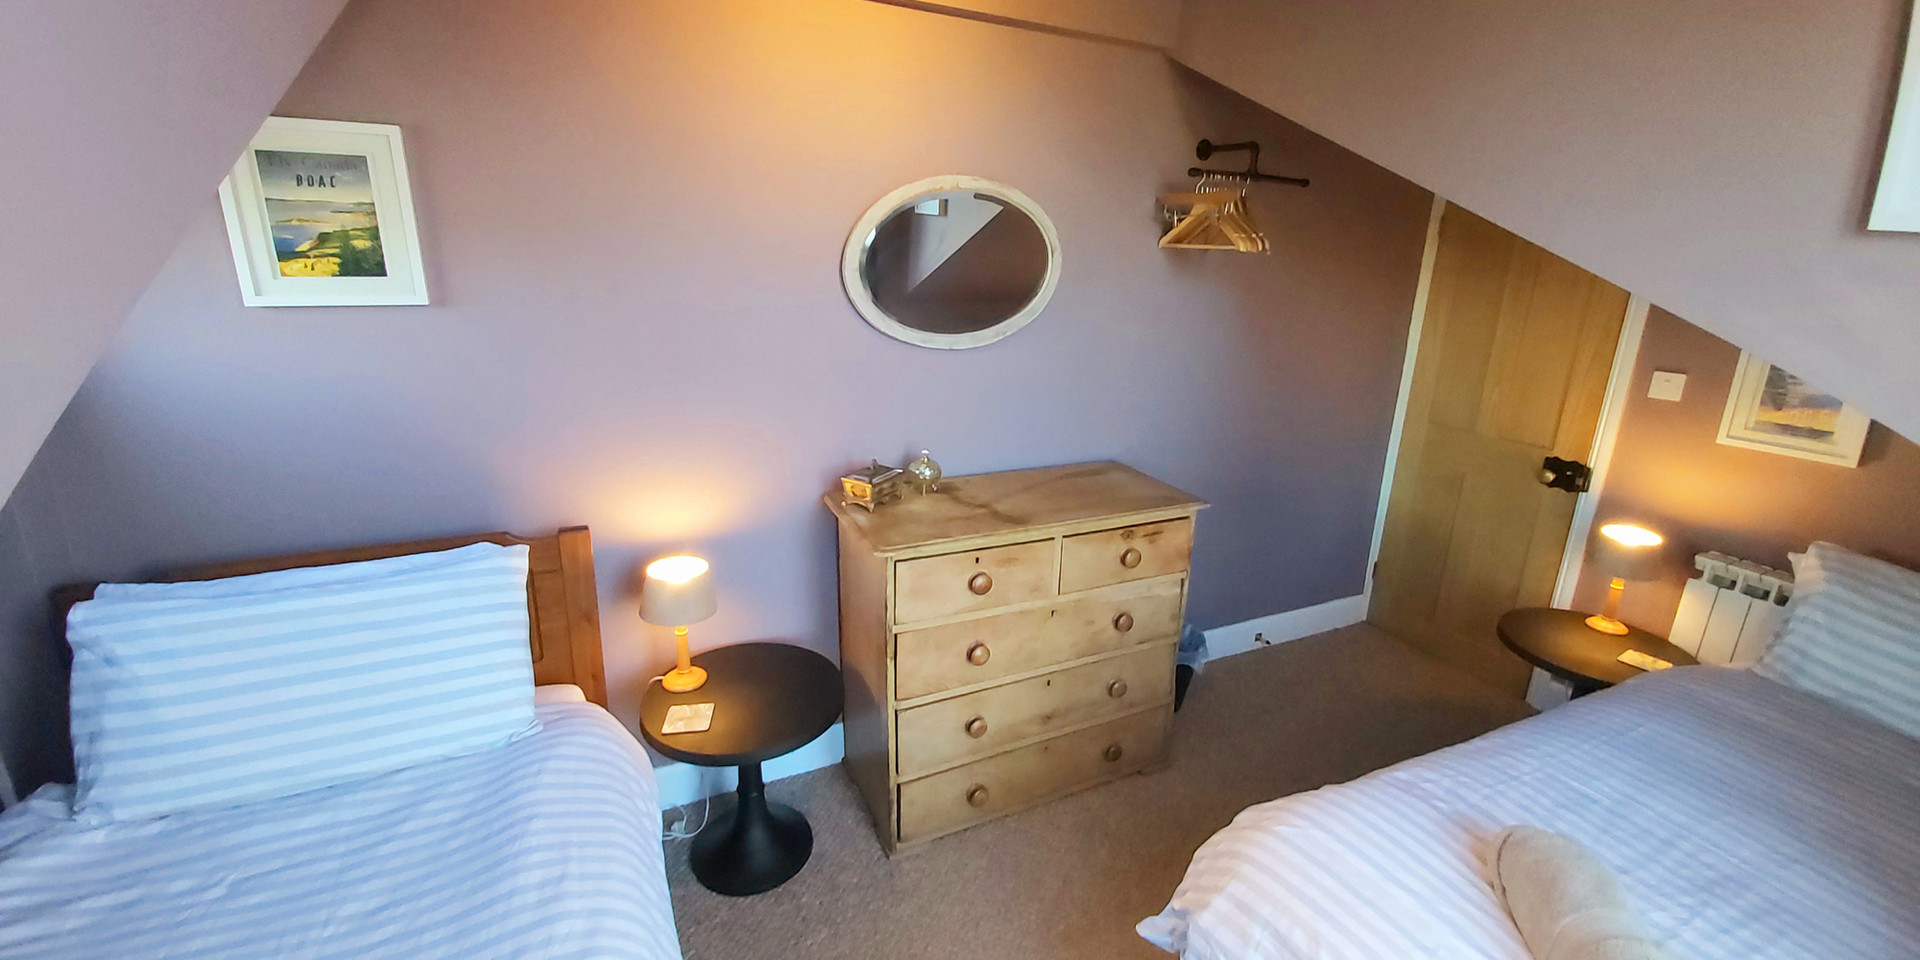 Bedroom 3, sleeps 2